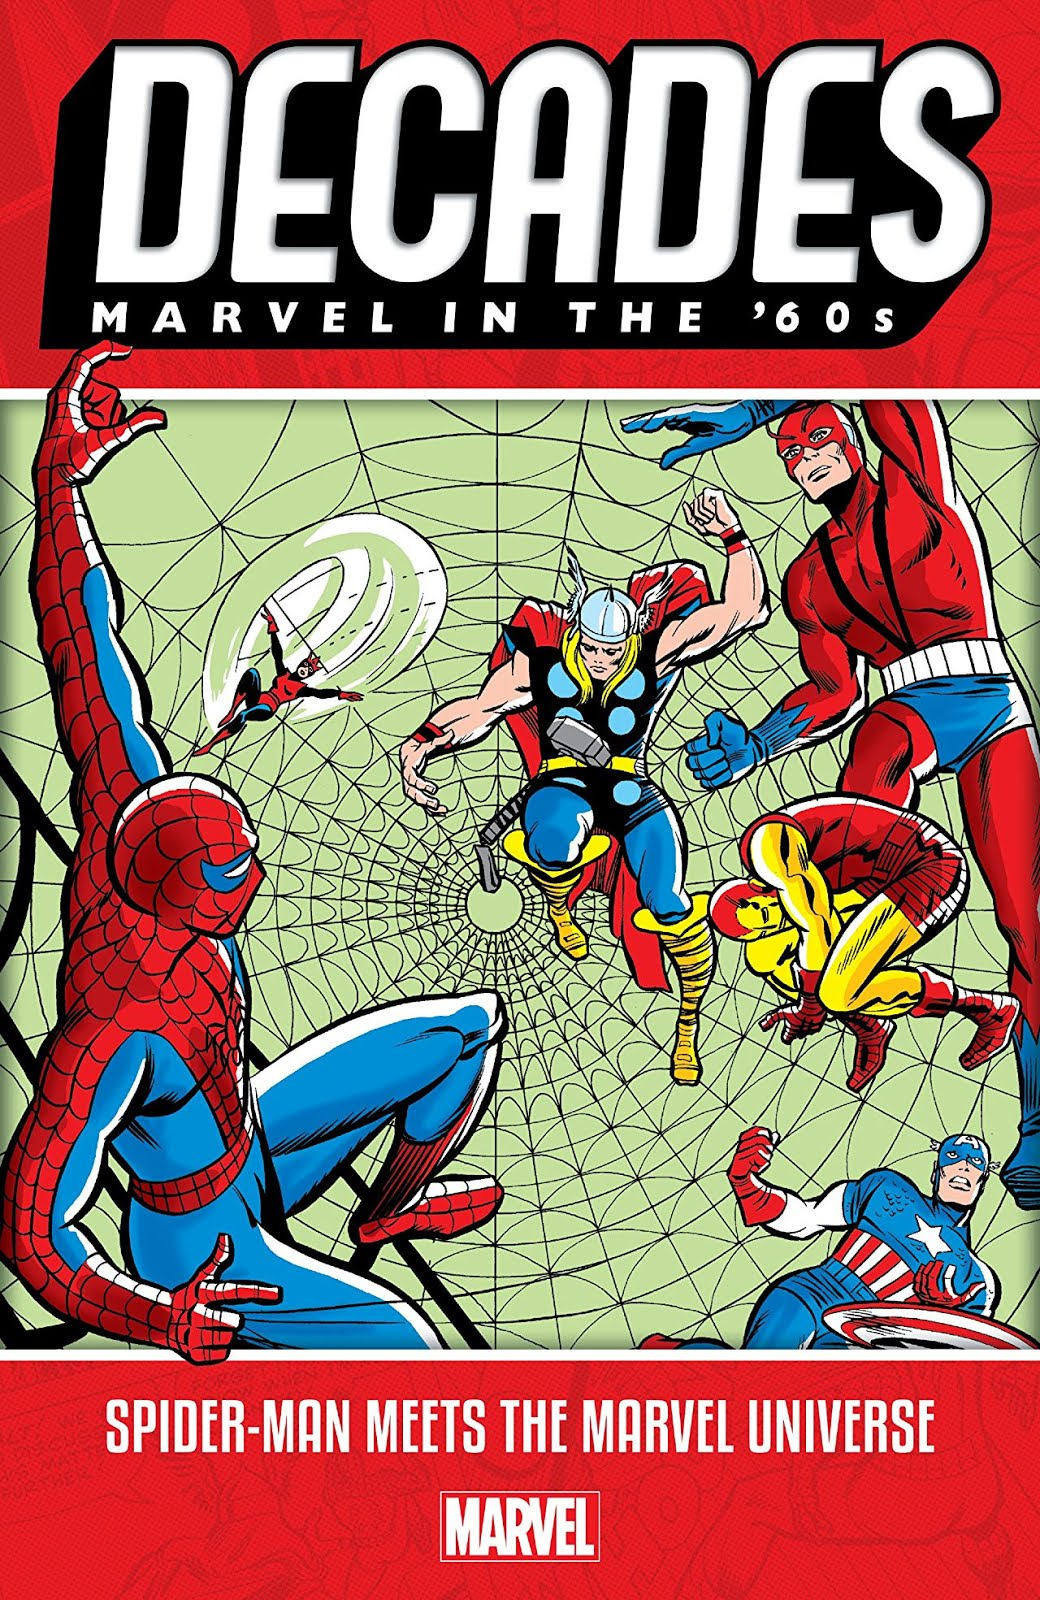 DECADES - MARVEL In The 60's!